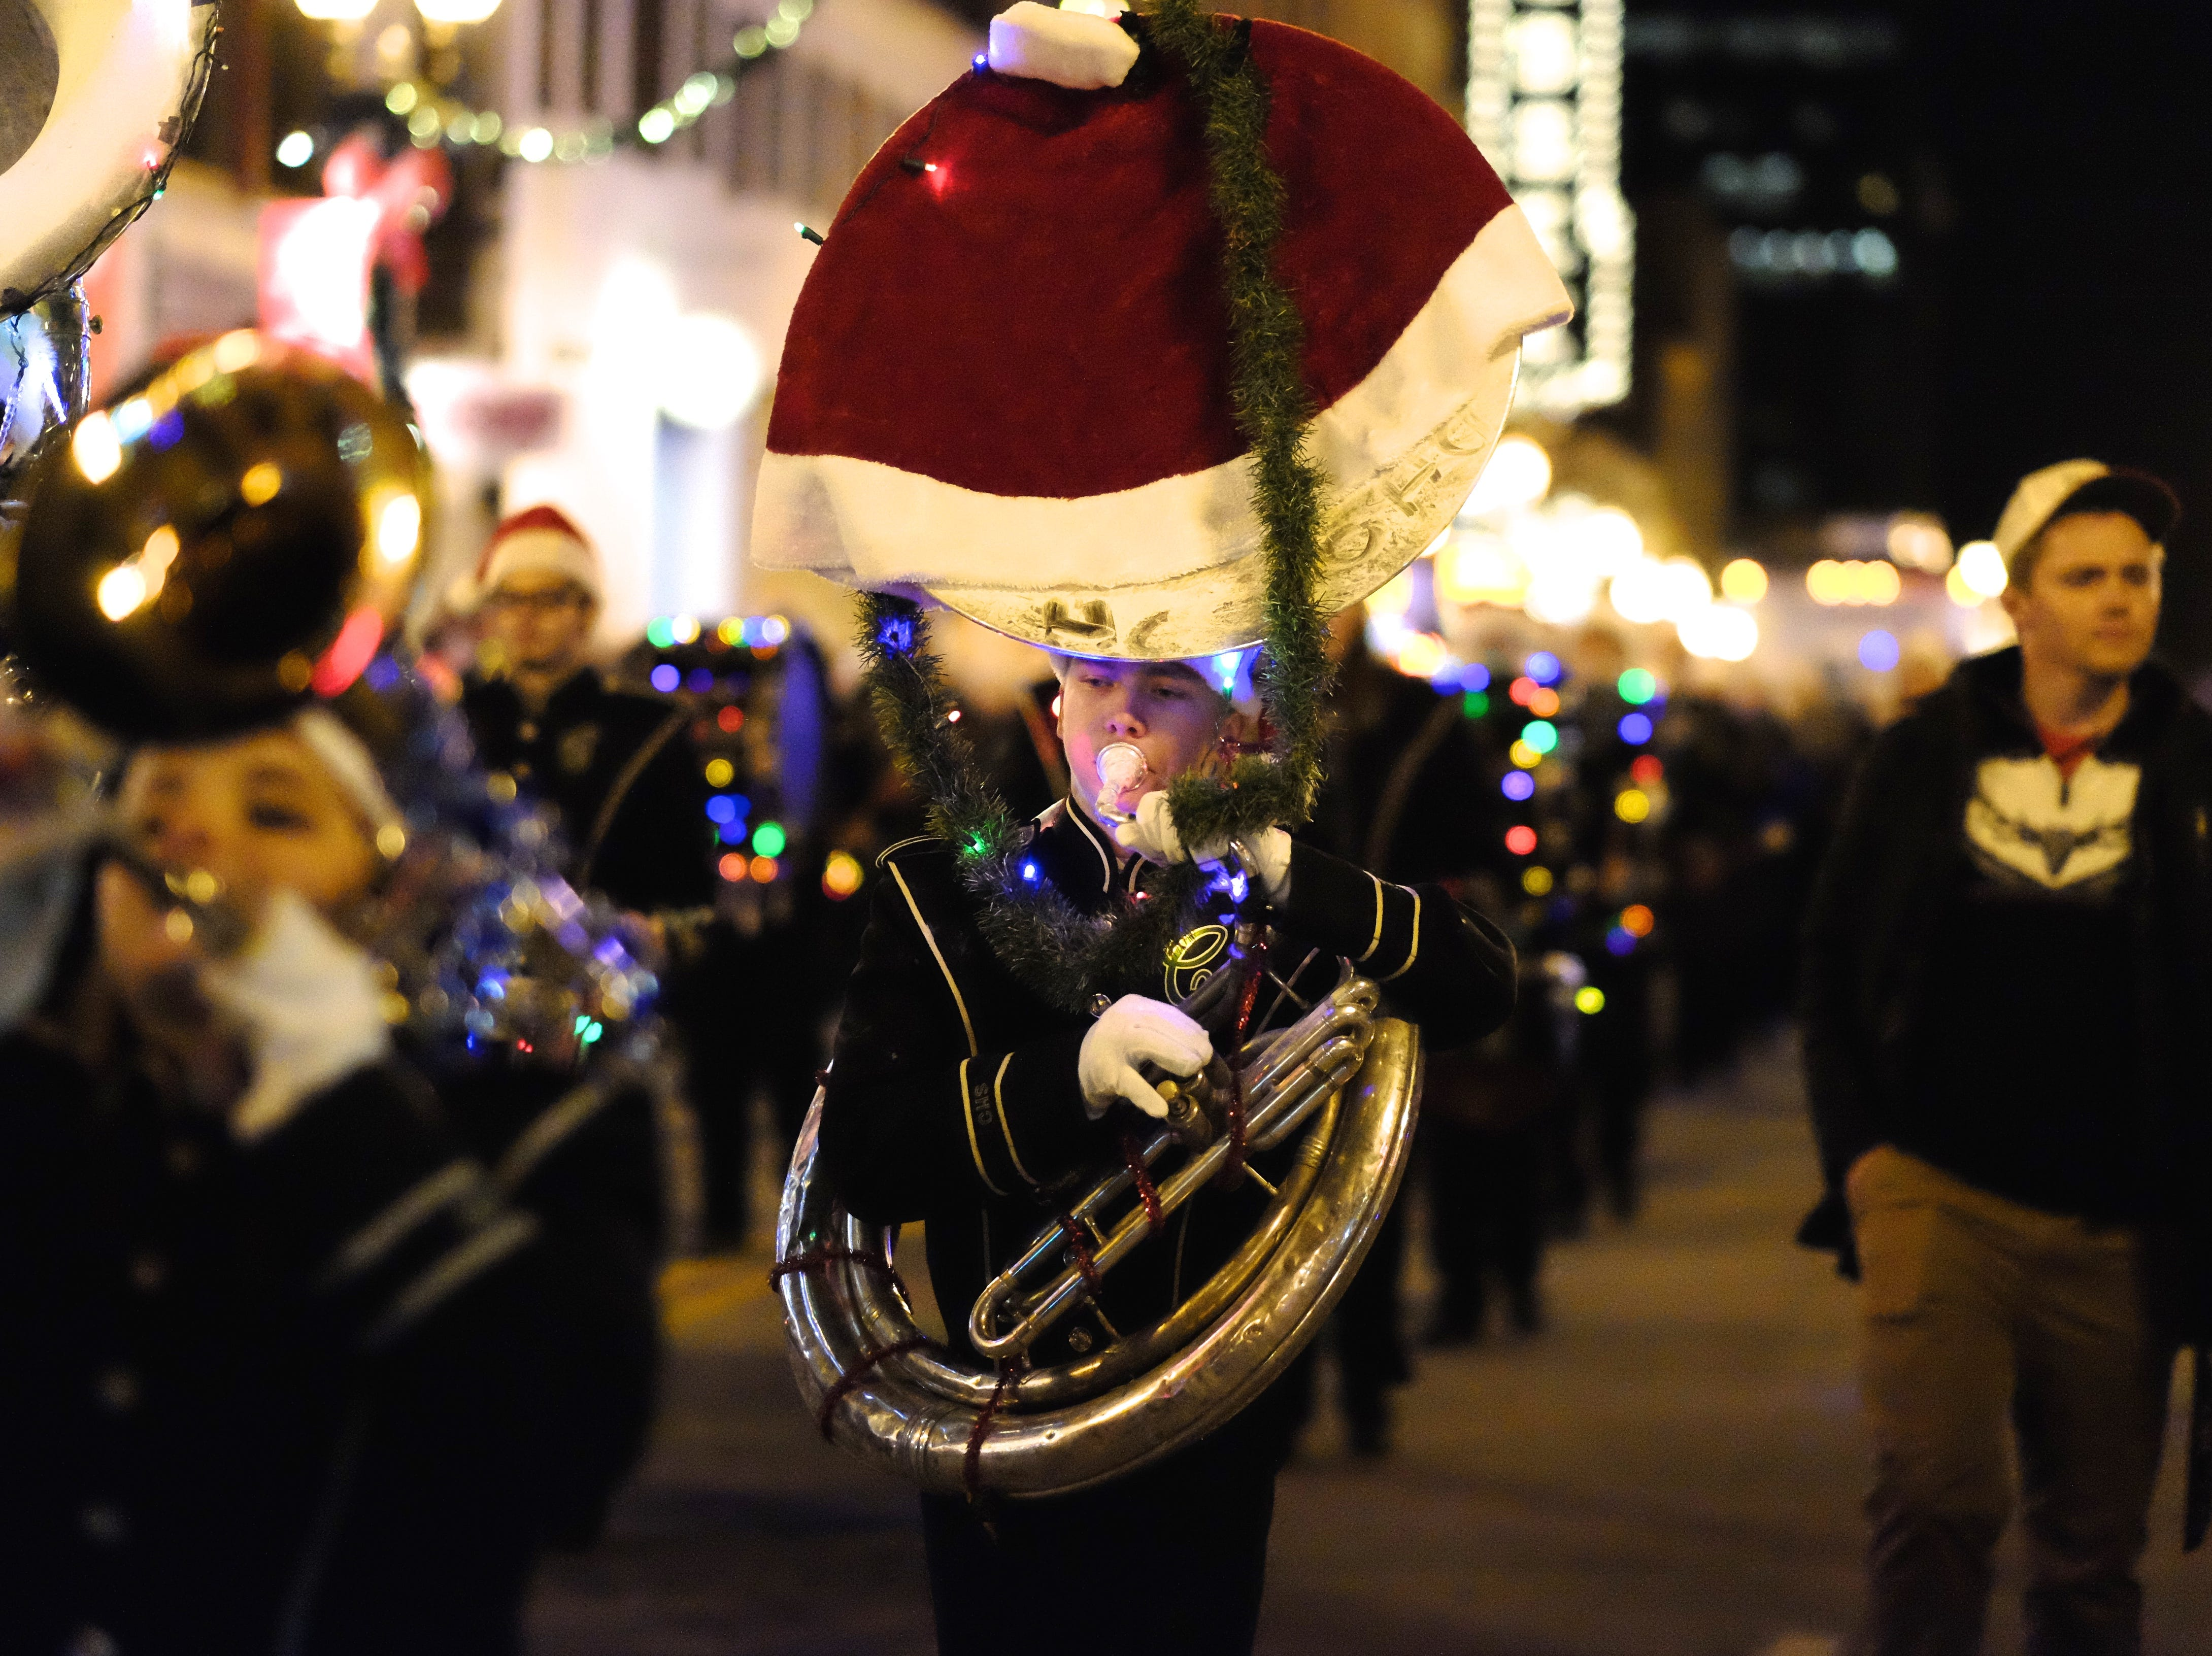 The Carter High School Marching Band makes their way down Gay Street during the 43rd annual WIVK Christmas Parade on Friday, December 4, 2015, in Knoxville.